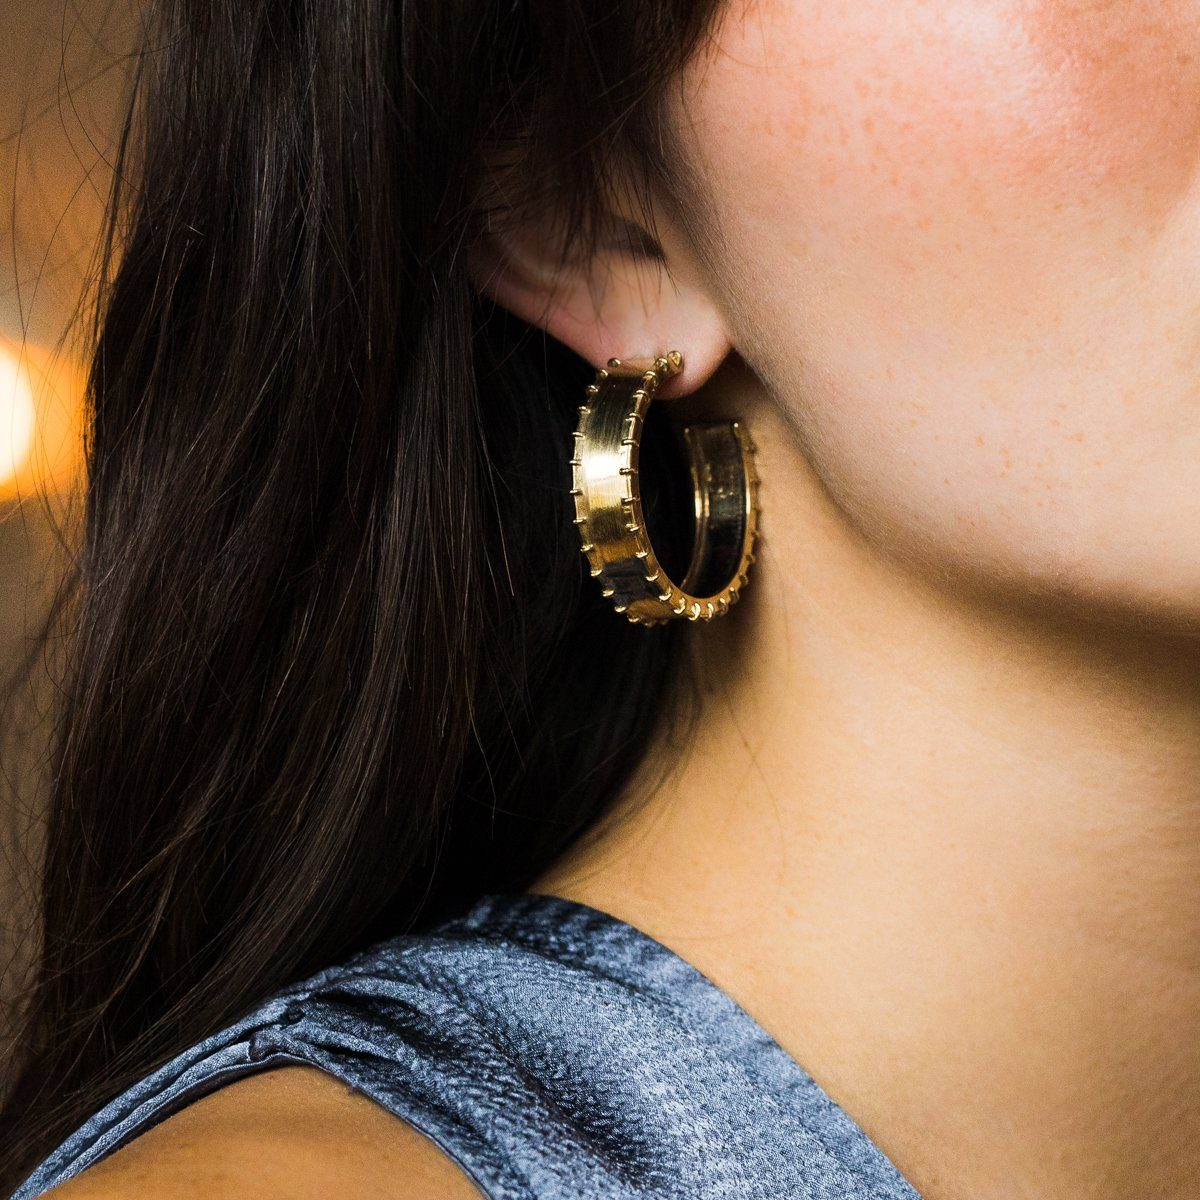 bfc3657d3 Couro Earrings - earrings - Laura Lombardi local eclectic